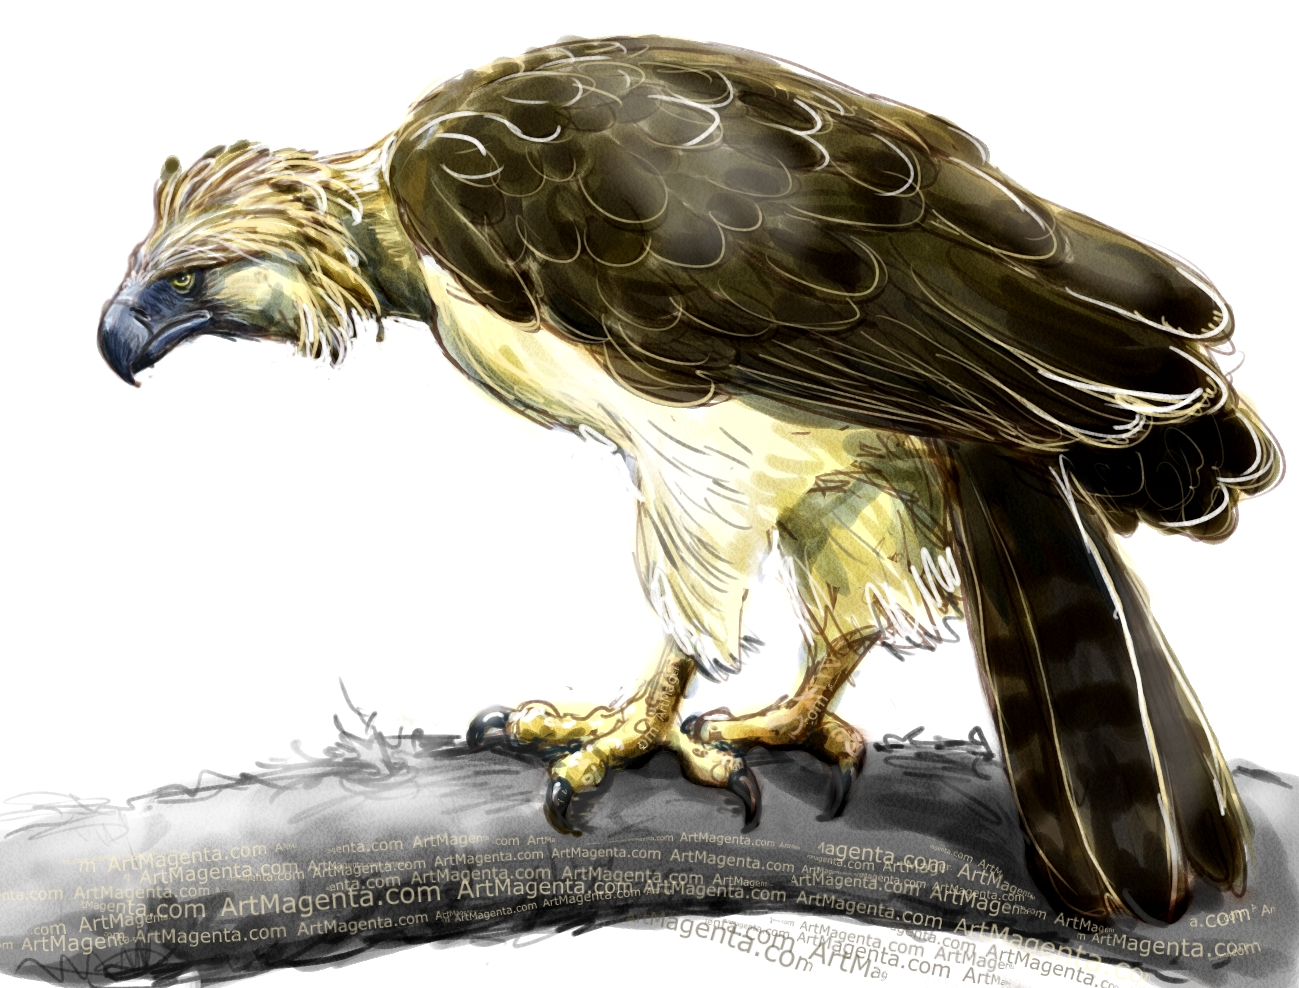 Philippine eagle sketch painting. Bird art drawing by illustrator Artmagenta